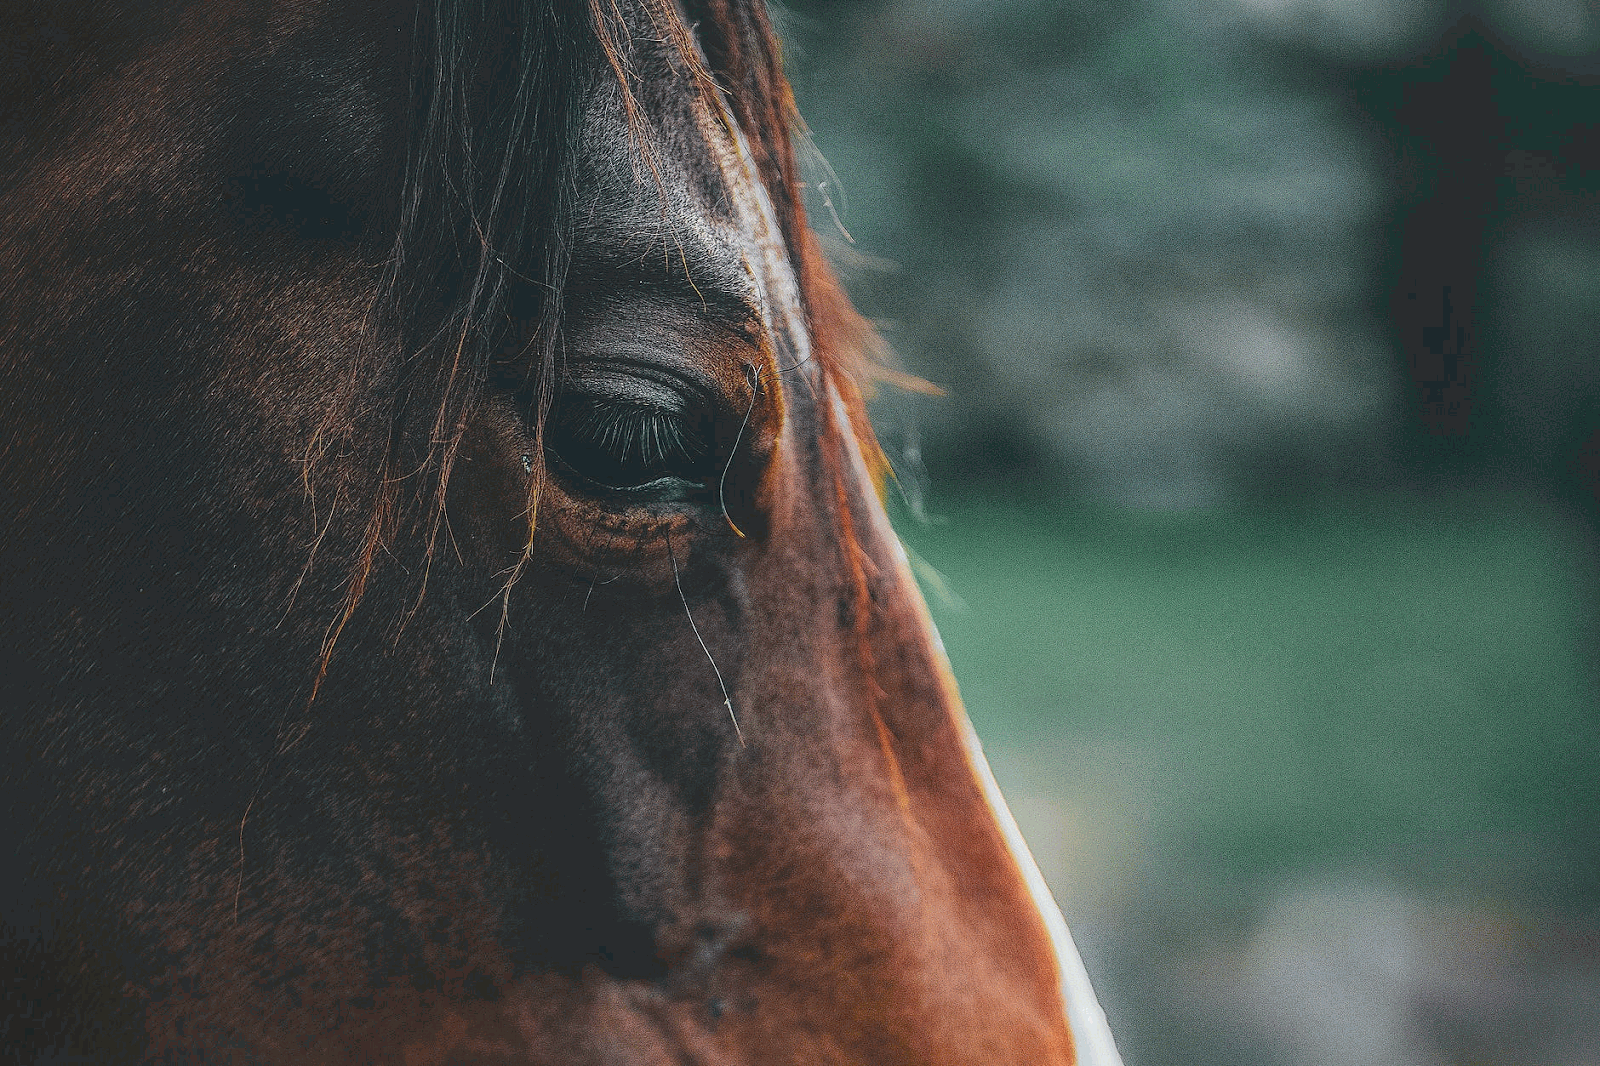 a brown horse's face